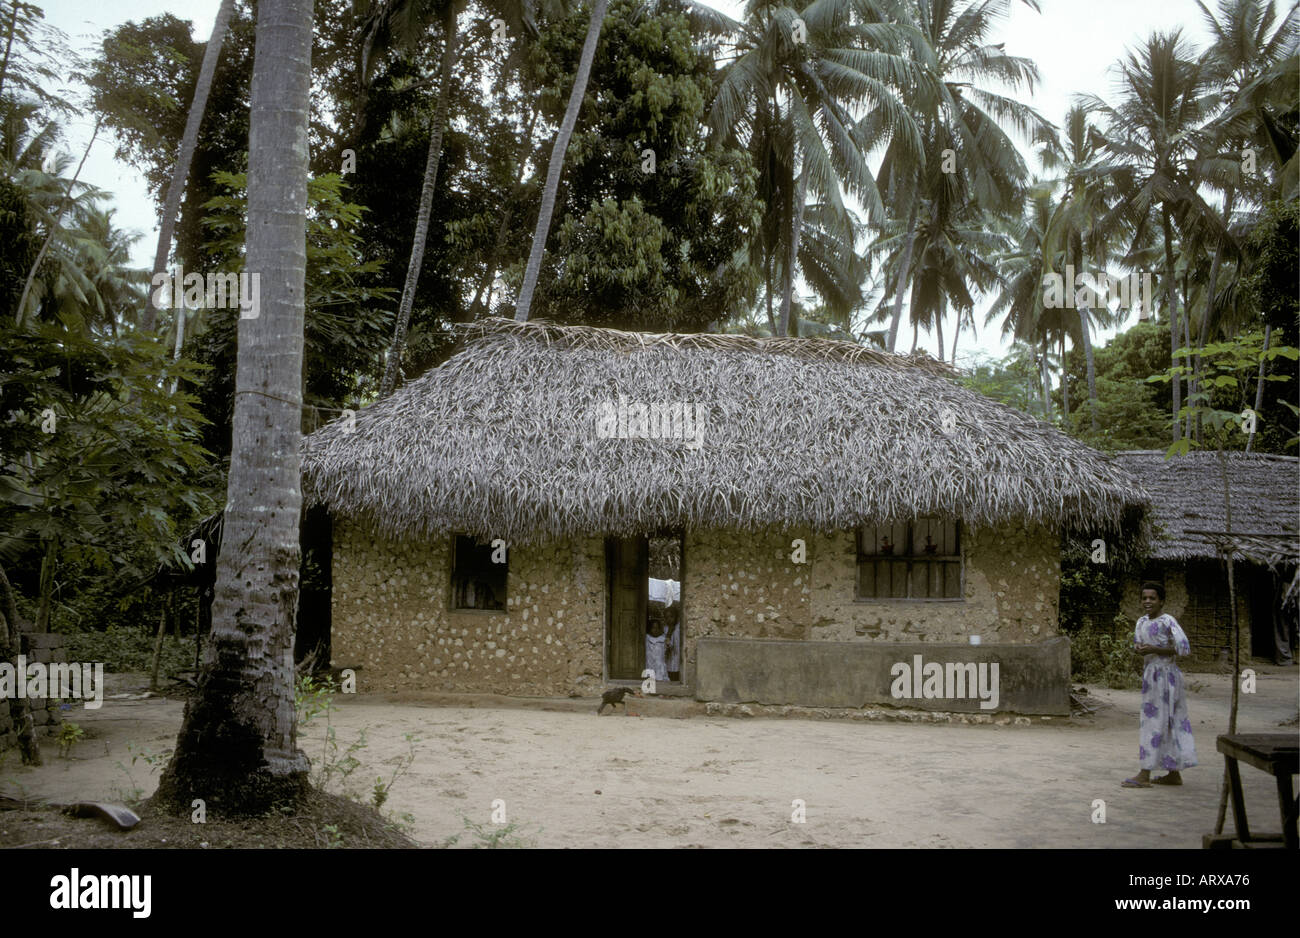 A typical native African hut or home Zanzibar Tanzania East Africa - Stock Image